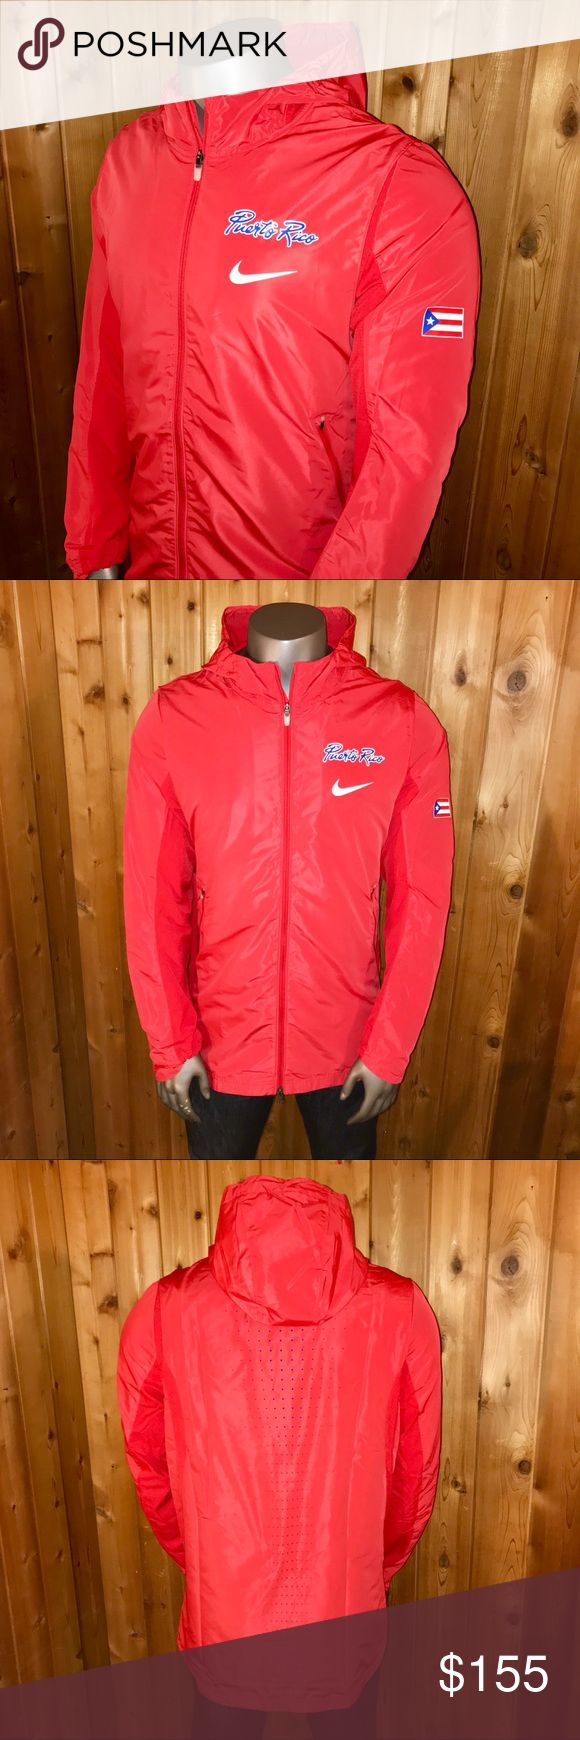 NWT! Nike Hyper Elite Puerto Rico Olympic Jacket Brand New With Tags!  -Size: U.S. Men's XL -Color: Red/Blue Interior -Official Nike Product -Nike Hyper Elite -Official Olympic Apparel of the Puerto Rican Basketball Team -Polyester and Spandex Blend -Regular Fit -Made in Indonesia  Jacket comes from a smoke and pet free home  Thanks for looking! Nike Jackets & Coats Performance Jackets